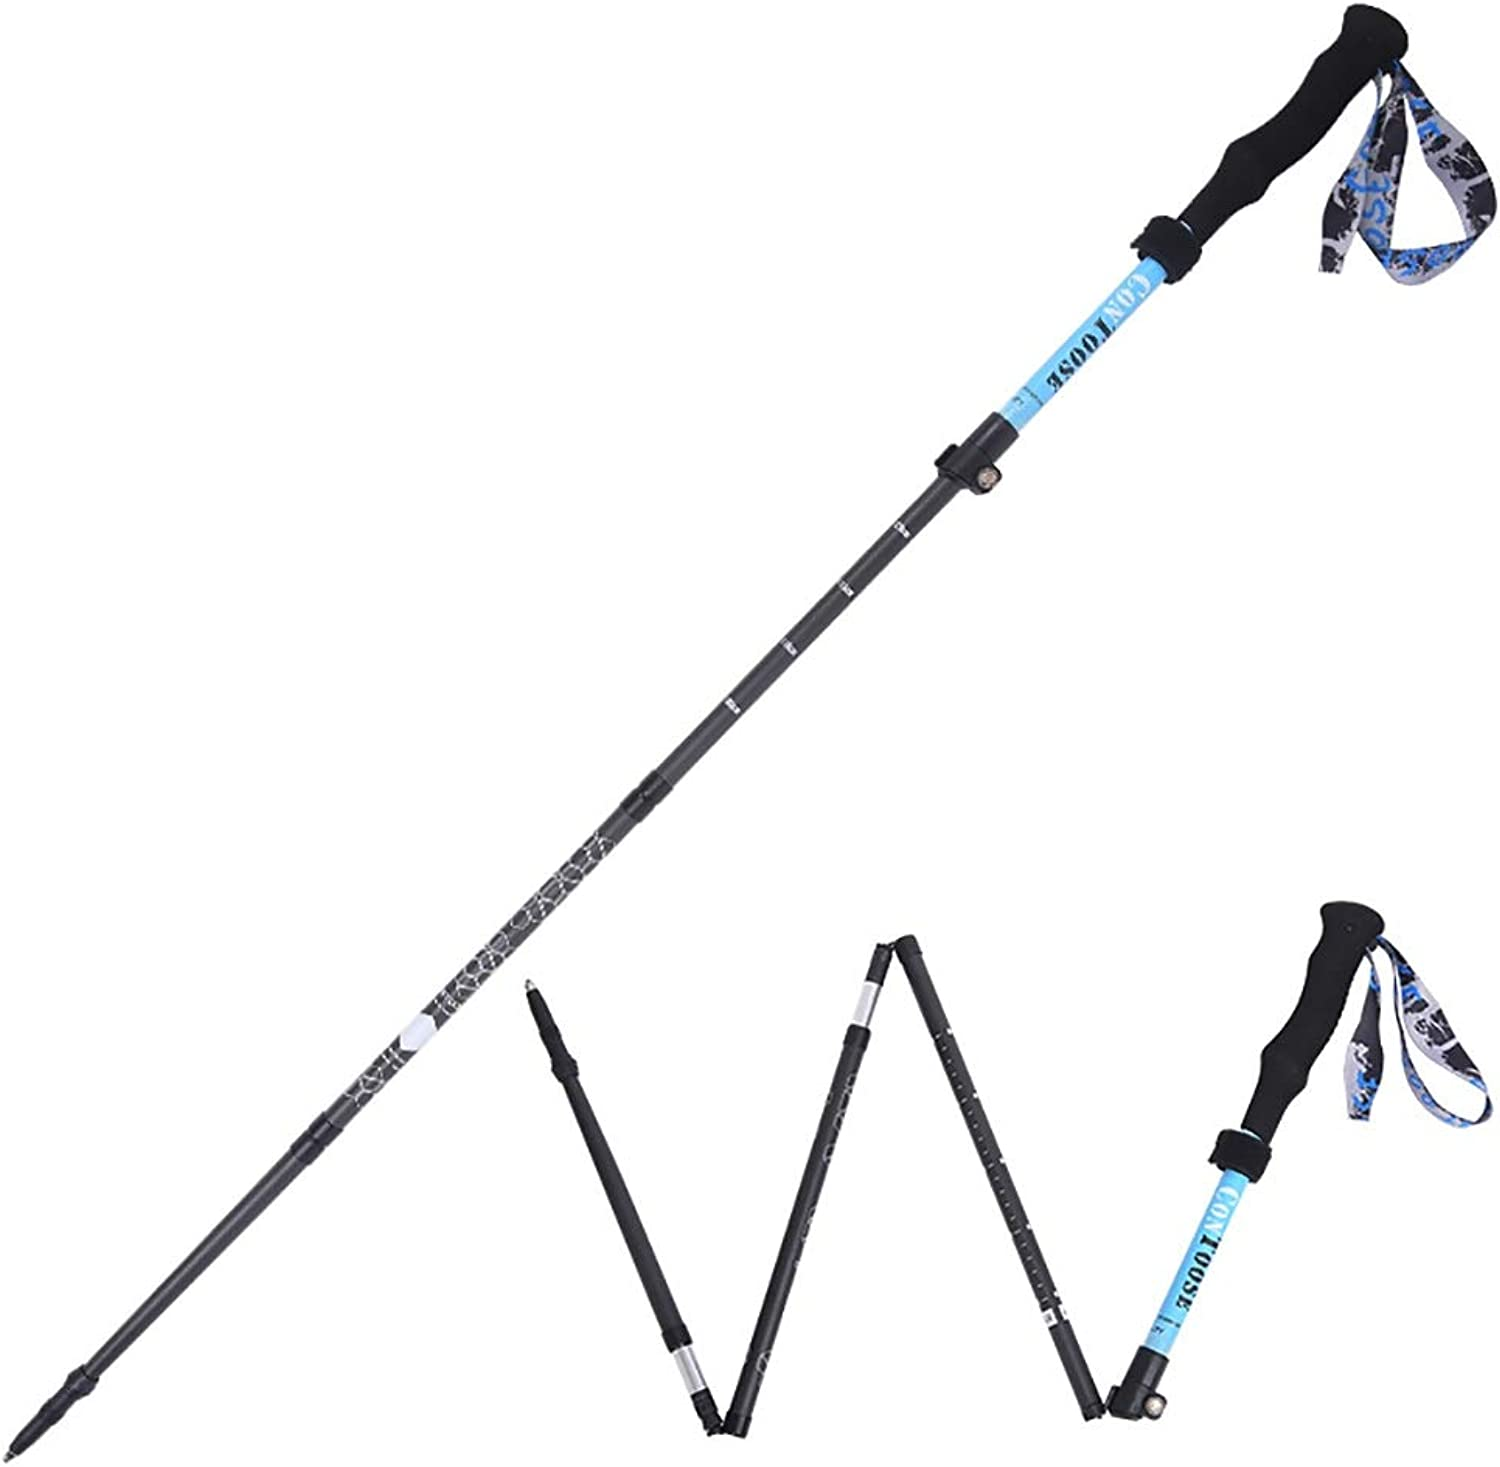 ROCKFEATHER Trekking Poles Collapsible Lightweight Carbon Alloy WearResistant CorrosionResistant Carbon Tip Suitable for Men's Women's Mountaineering Equipment,1PCS,Accessories&Carry Bags